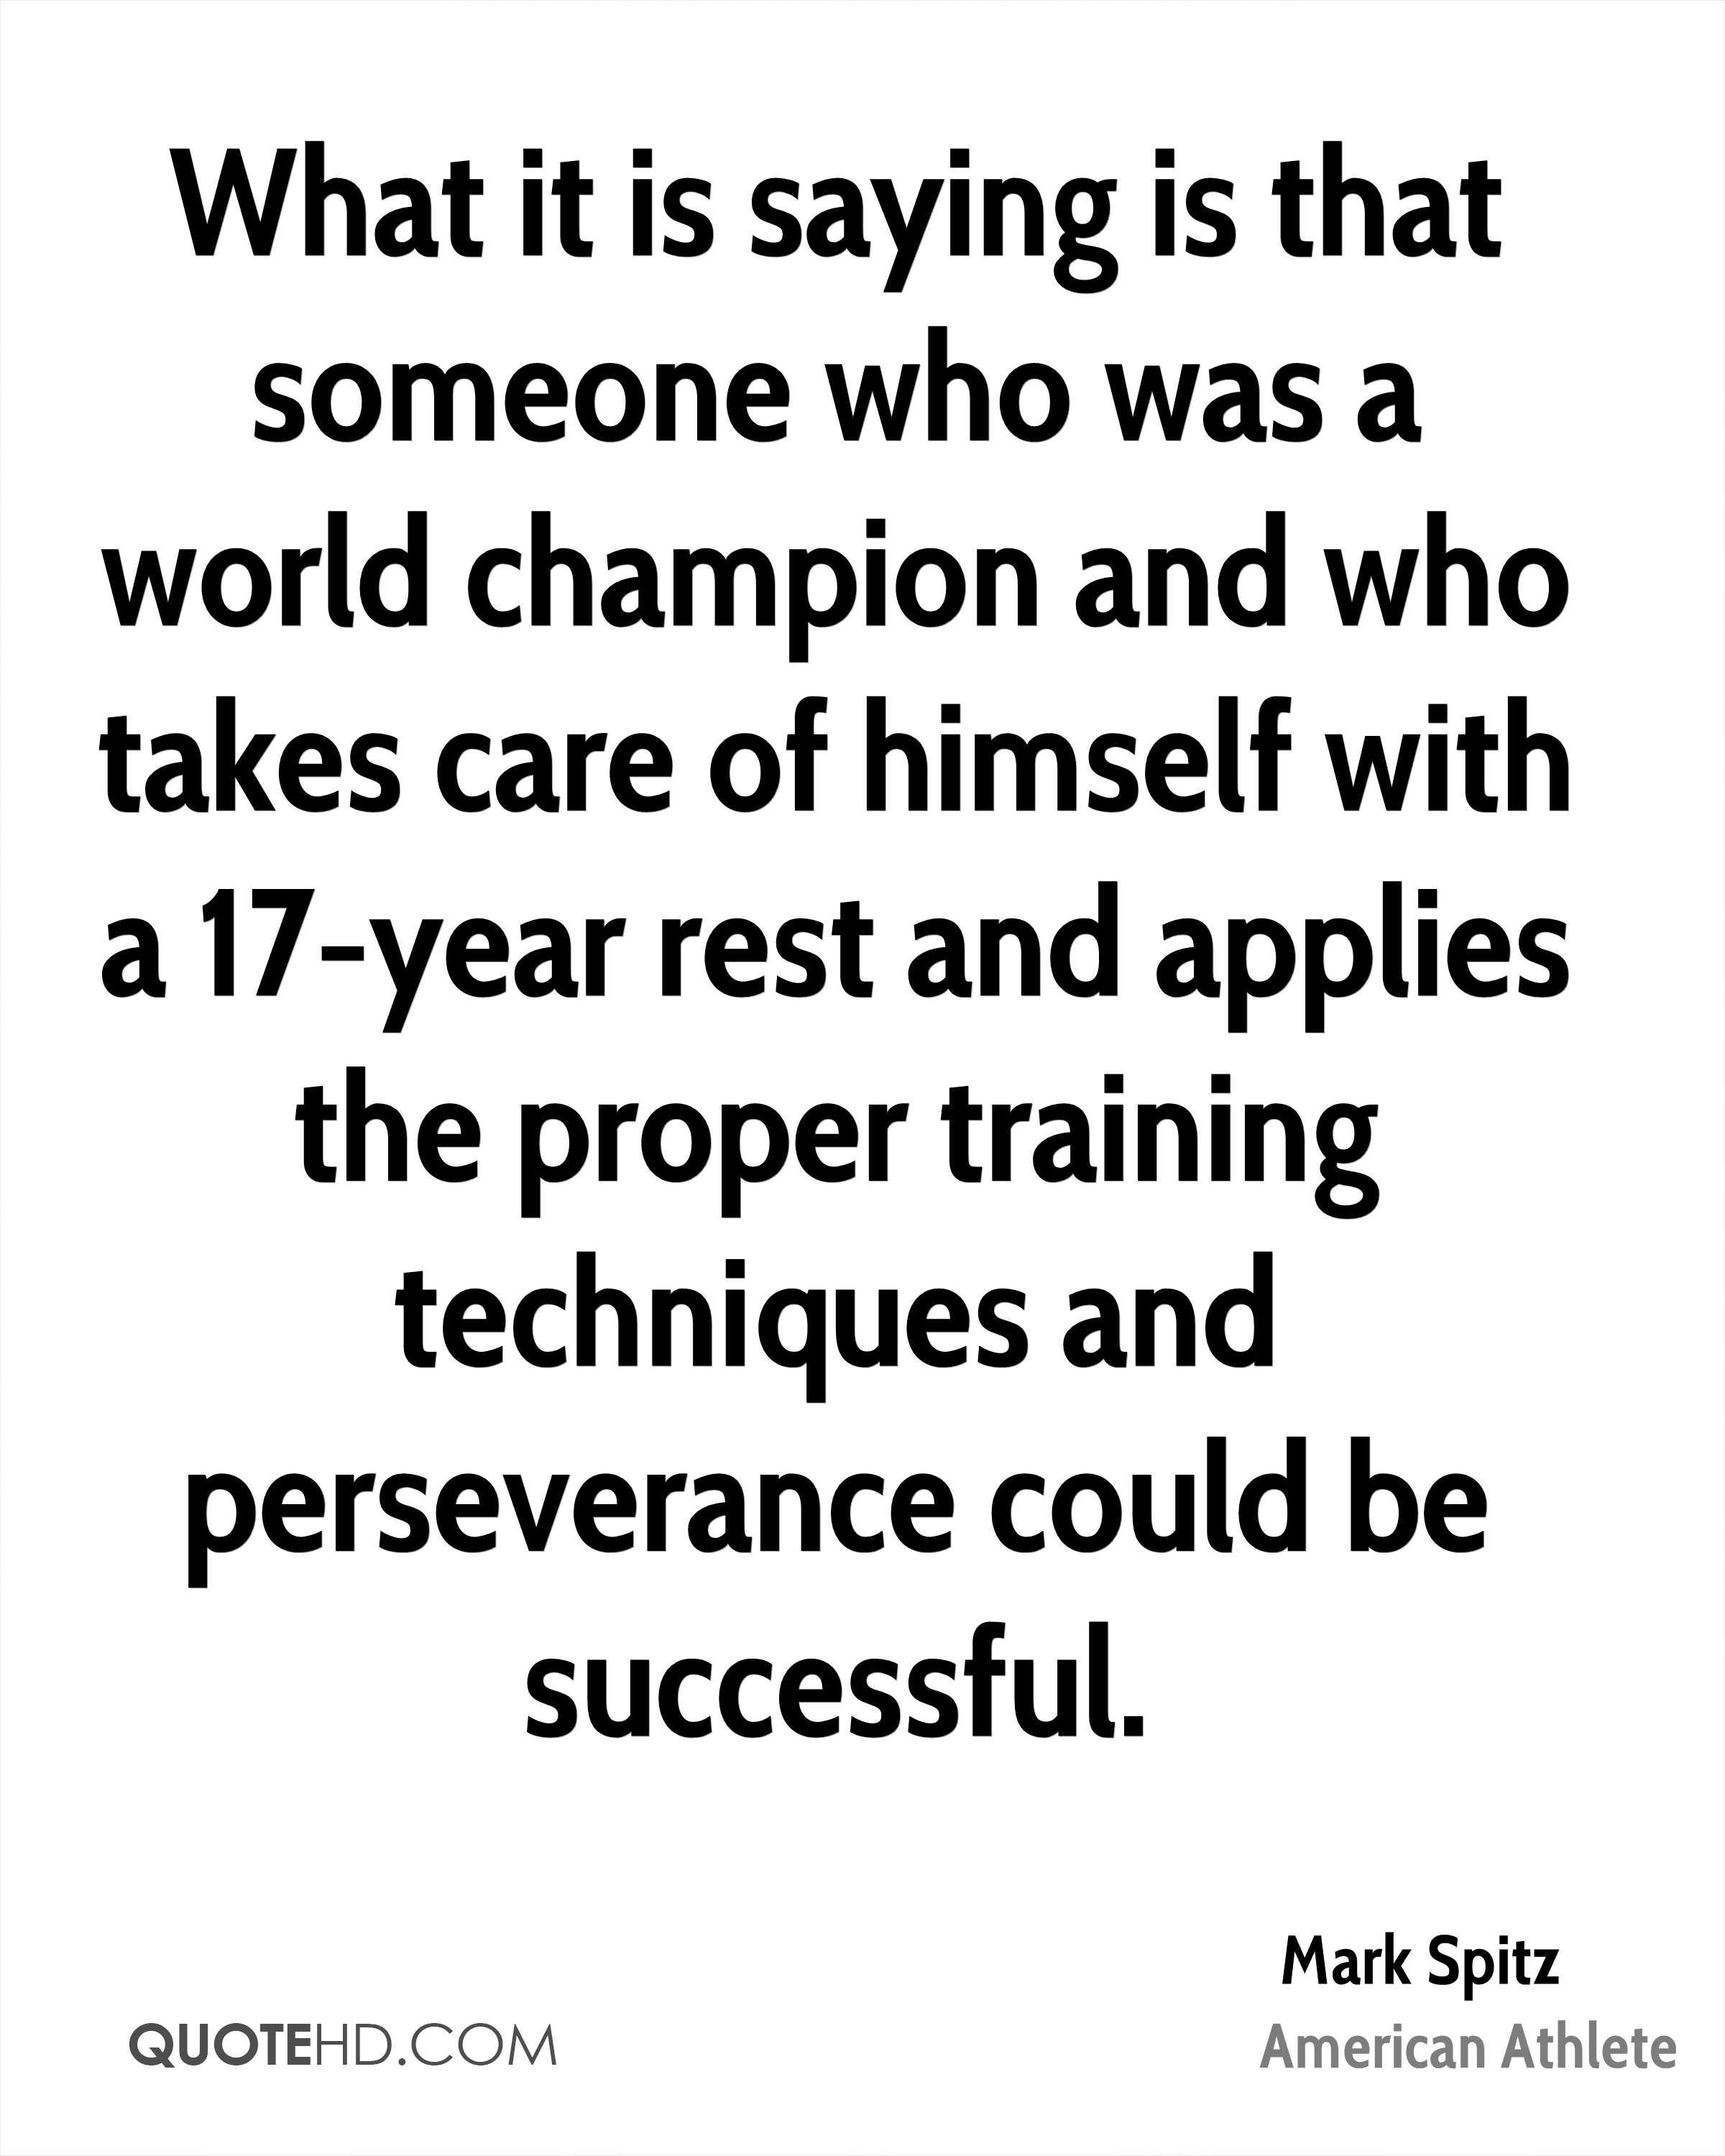 What it is saying is that someone who was a world champion and who takes care of himself with a 17-year rest and applies the proper training techniques and perseverance could be successful.